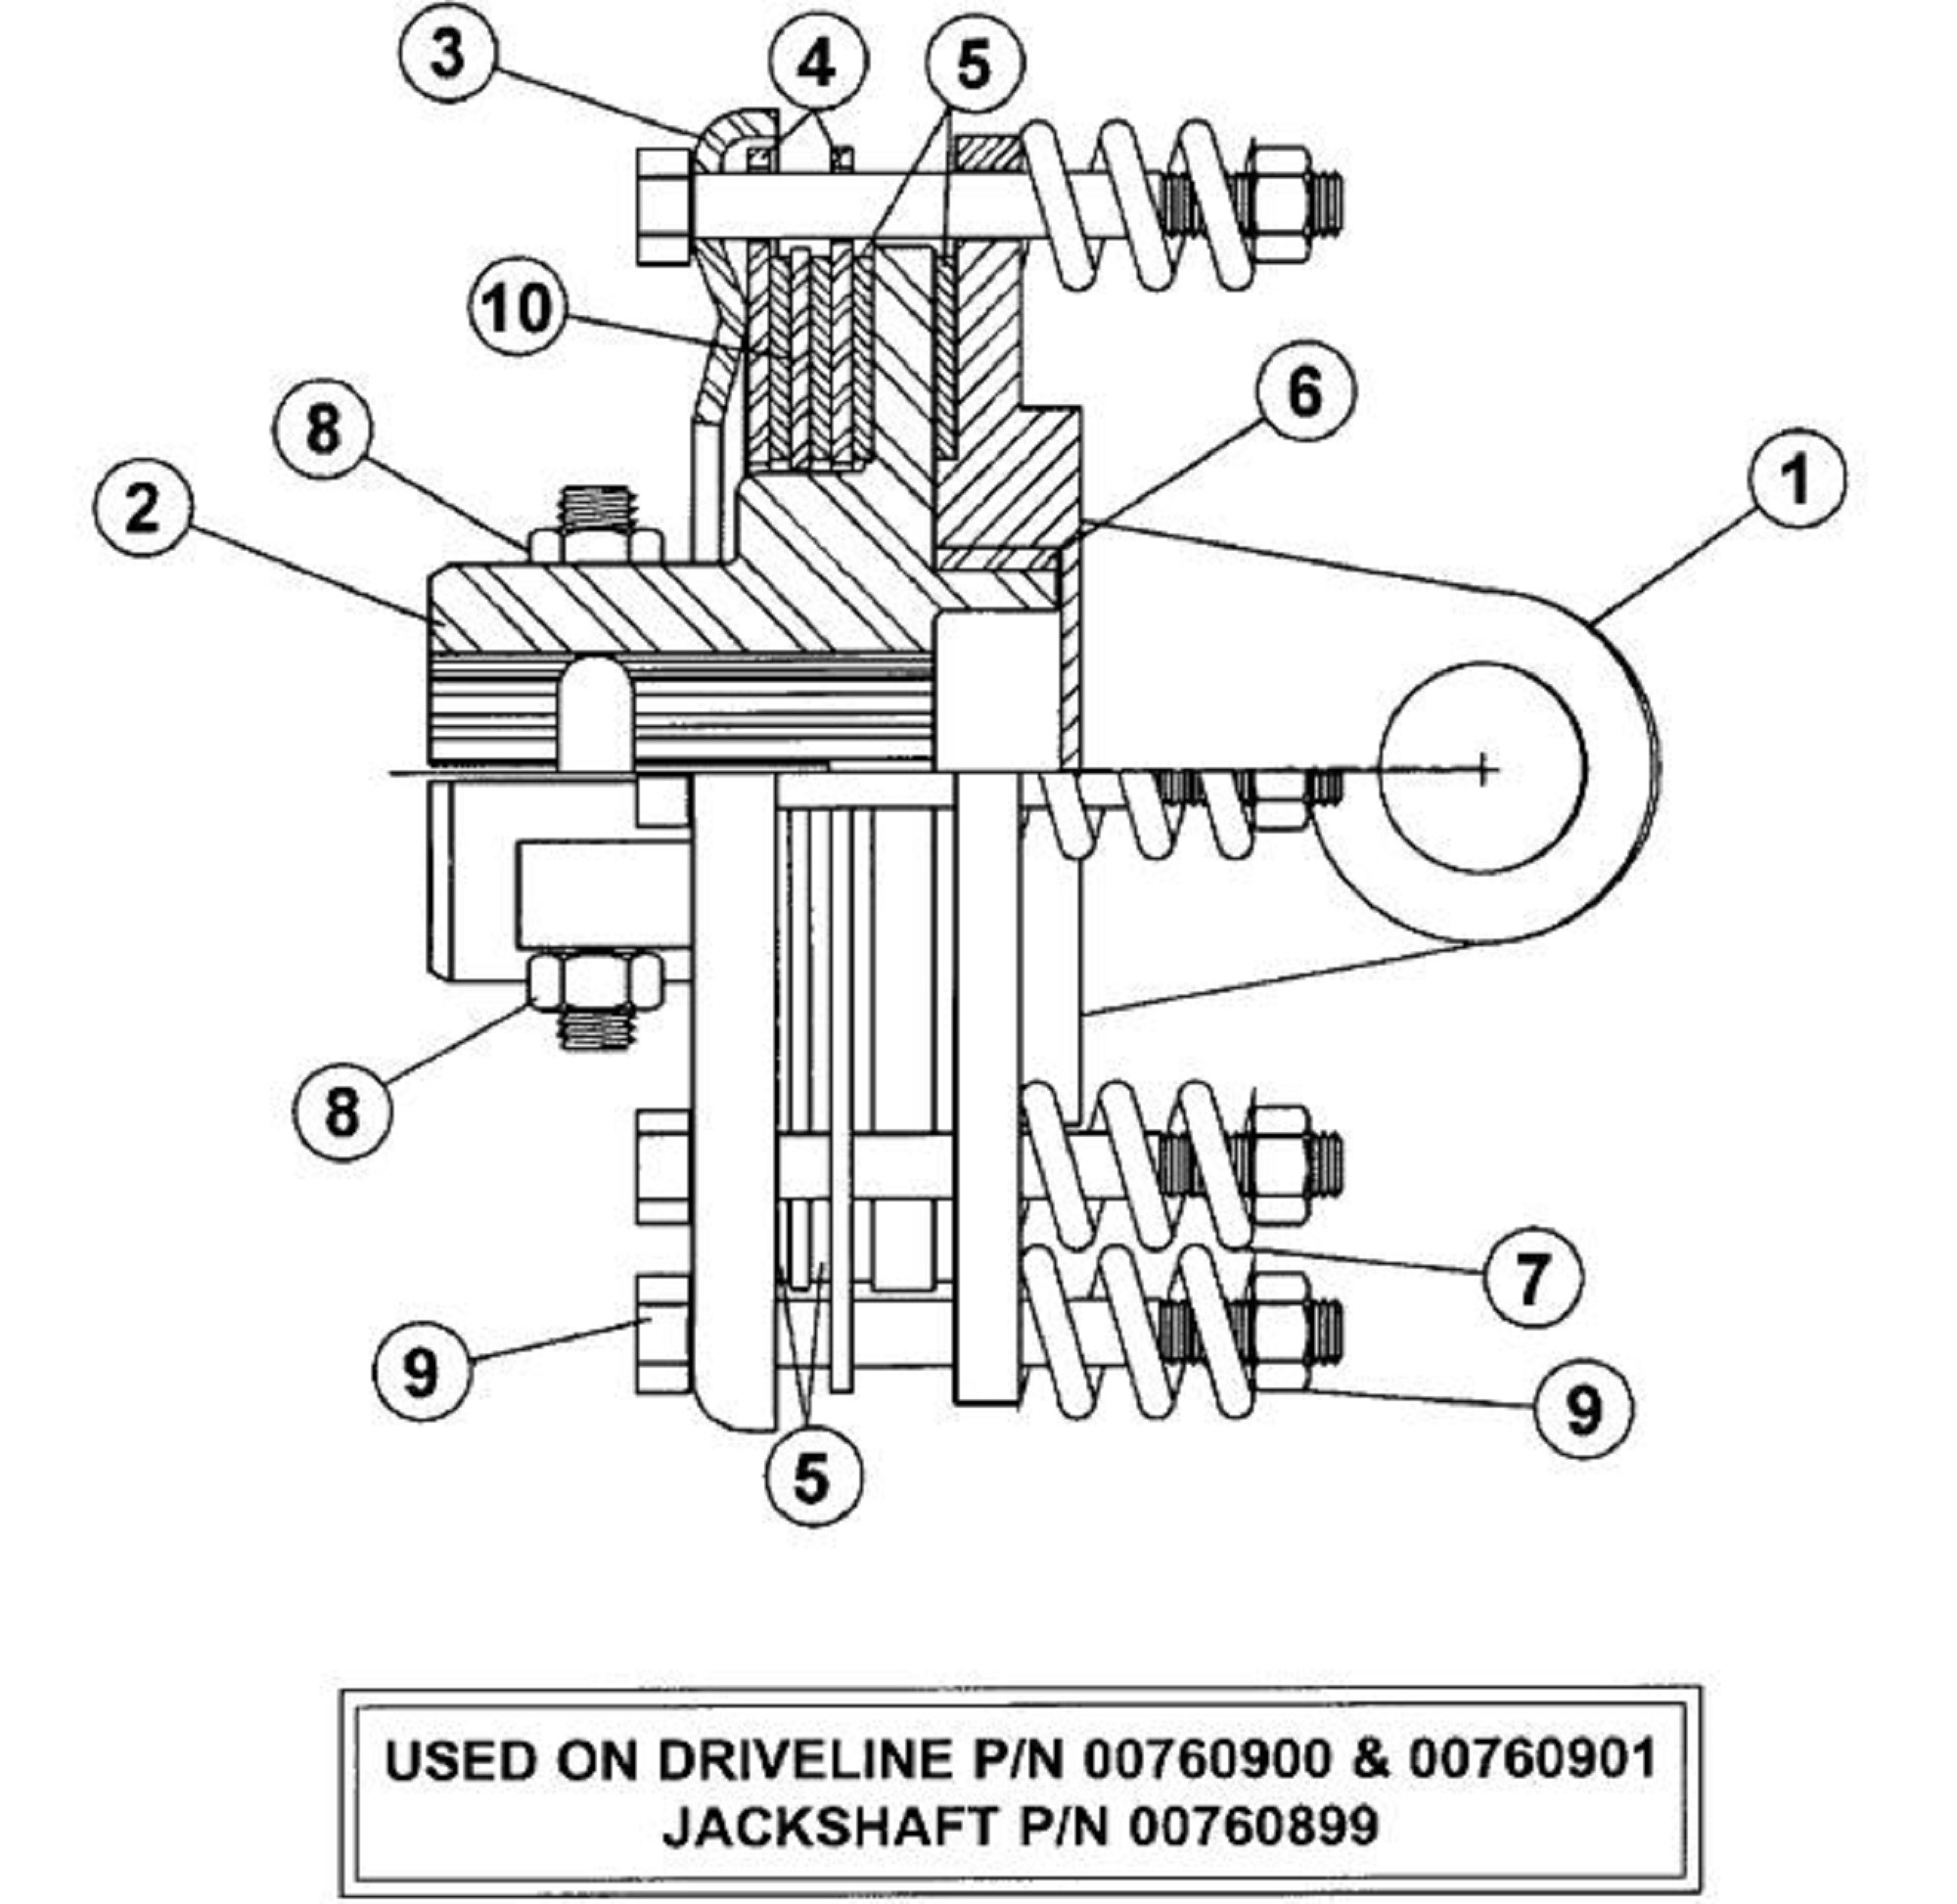 Clutch assembly diagram servis rhino tw84 rotary cutter tw84 sn current slip clutch of clutch assembly